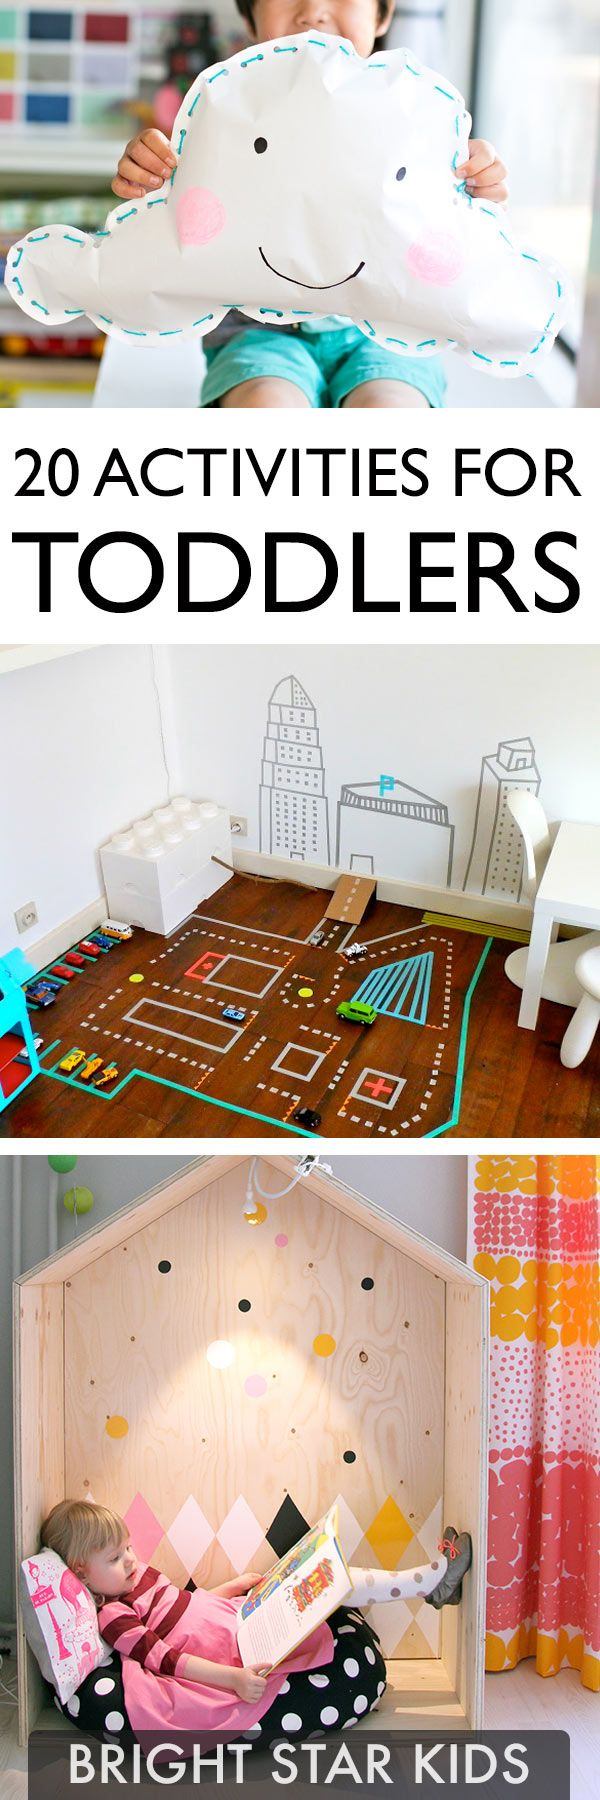 18 best Free Choice Games and Such images on Pinterest | Craft ...